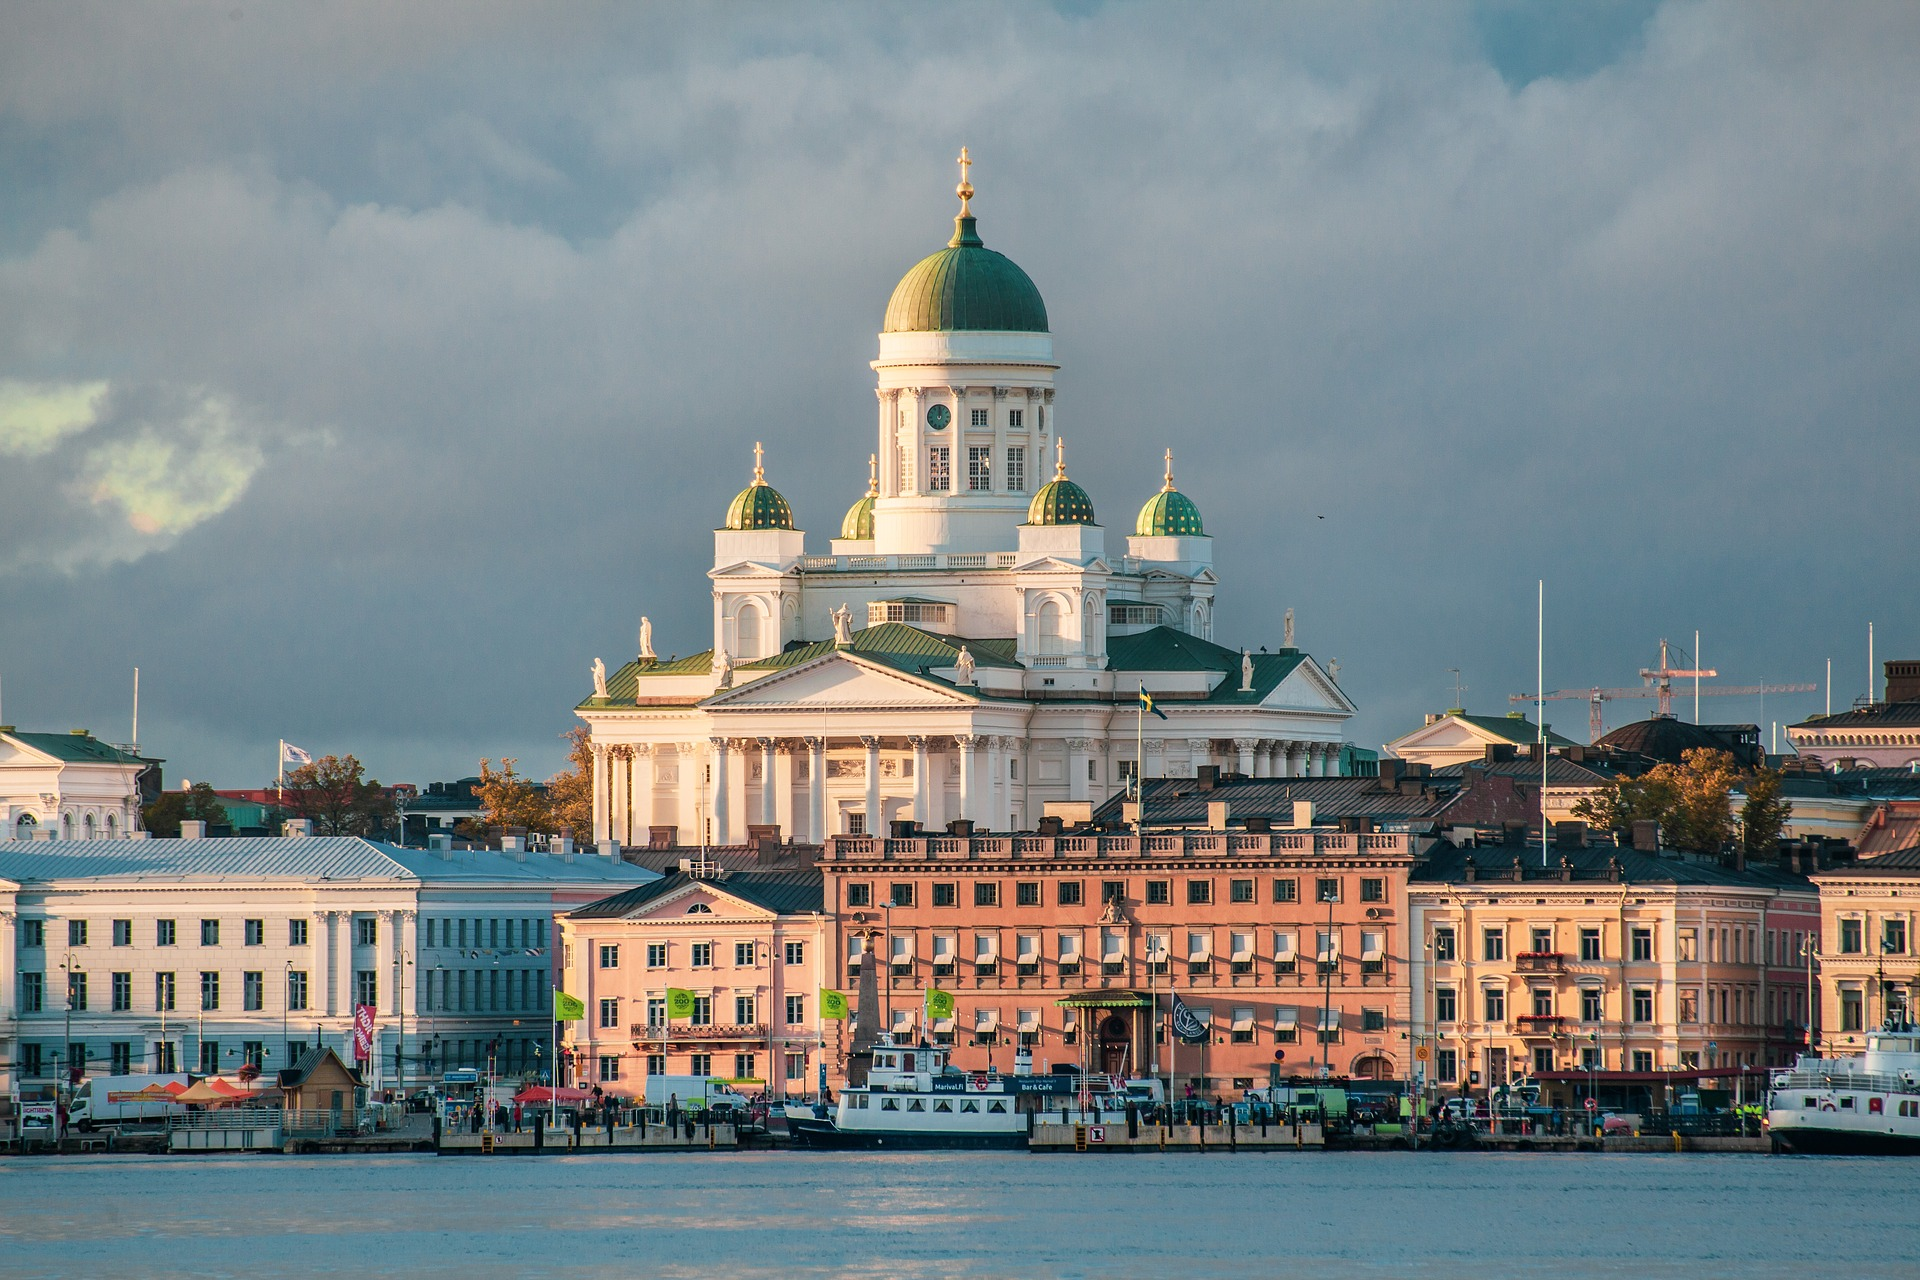 Today we are going a little bit further away than normal to visit Helsinki, a city that Claudia has been living in for the last four months.